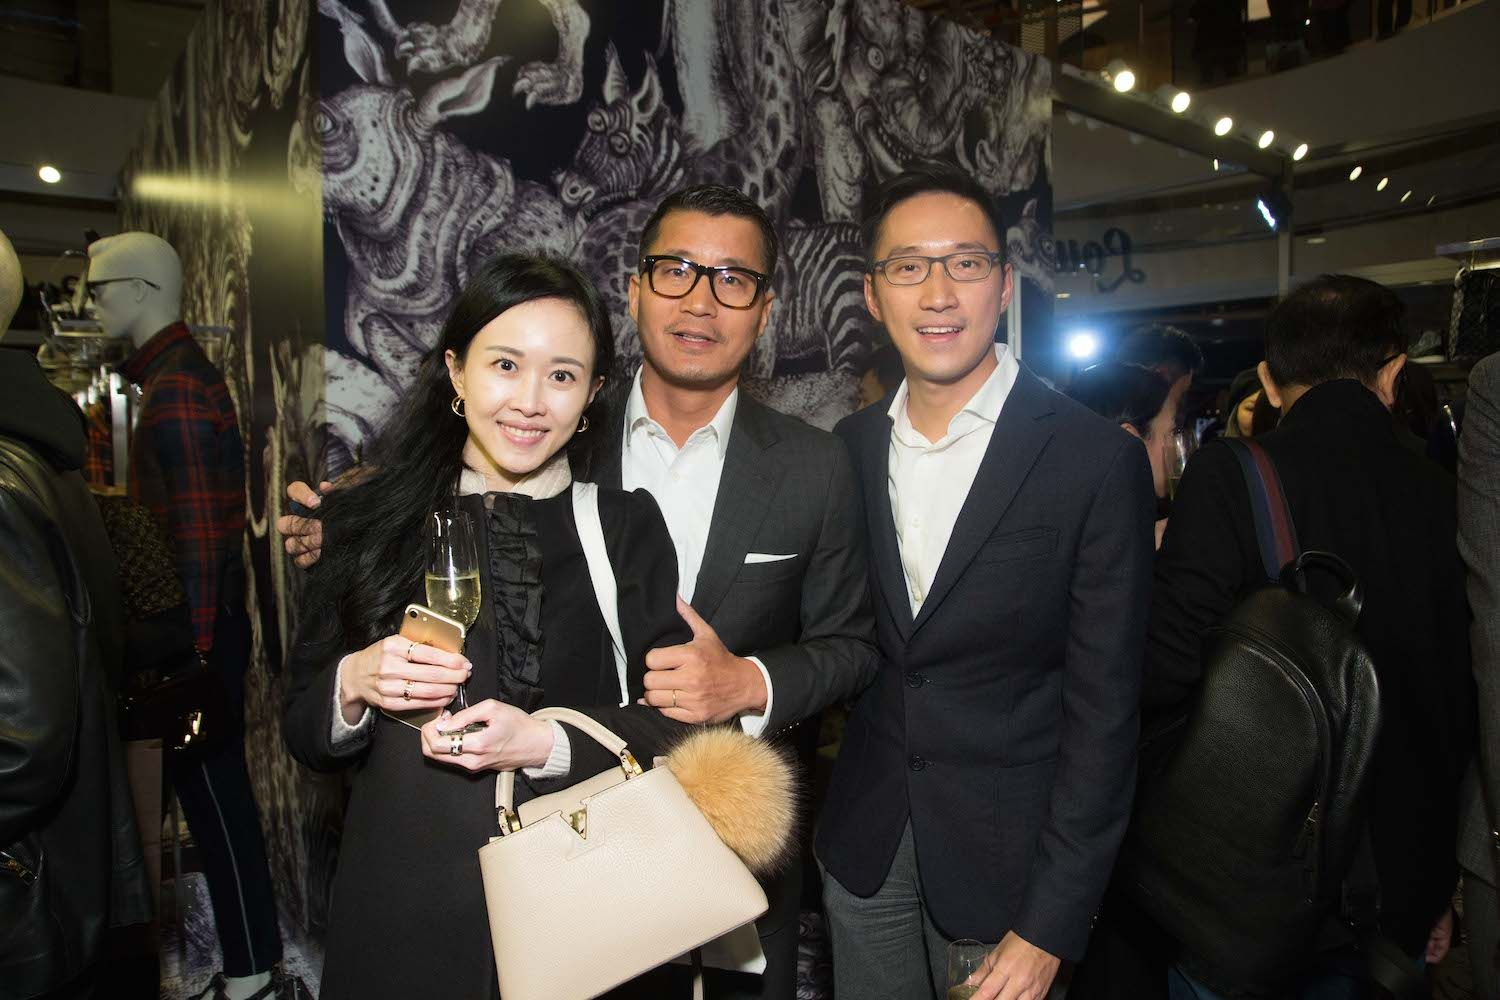 Jacqueline Chow, William Zhao and Evan Chow